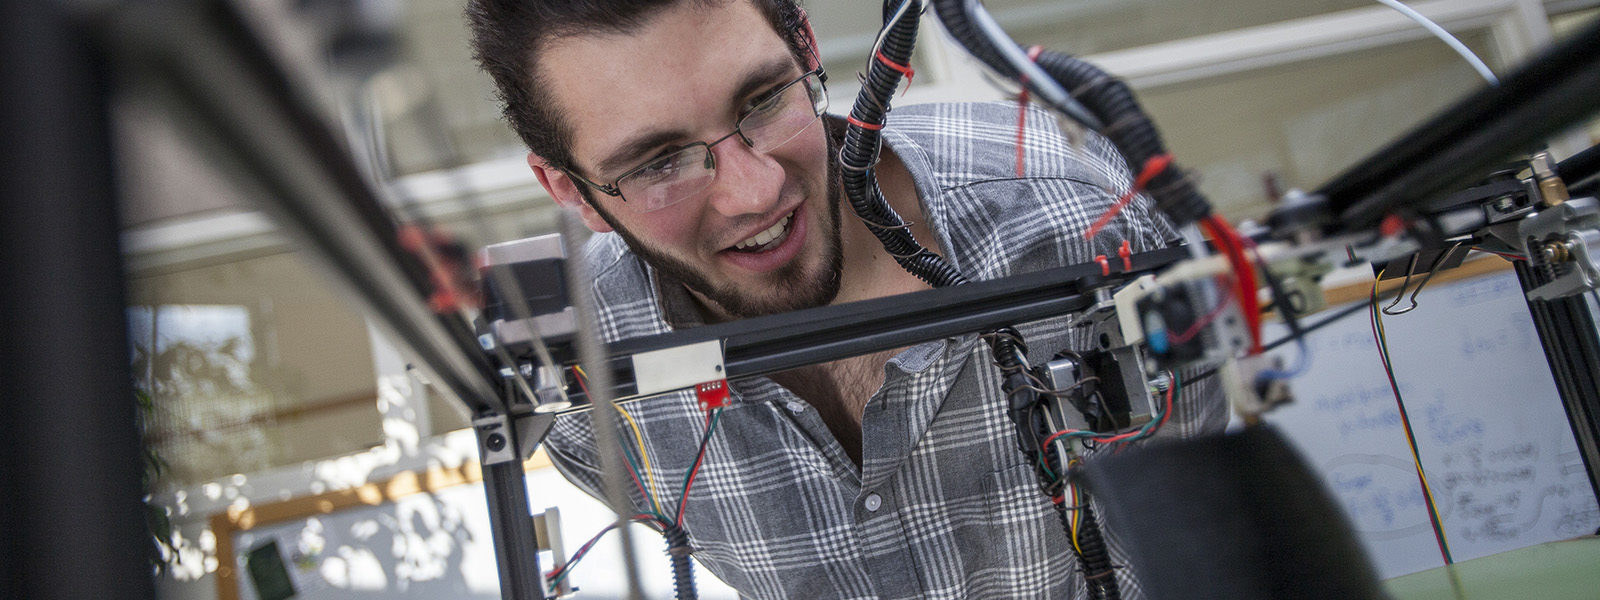 Northland College engineering student working on 3D printer